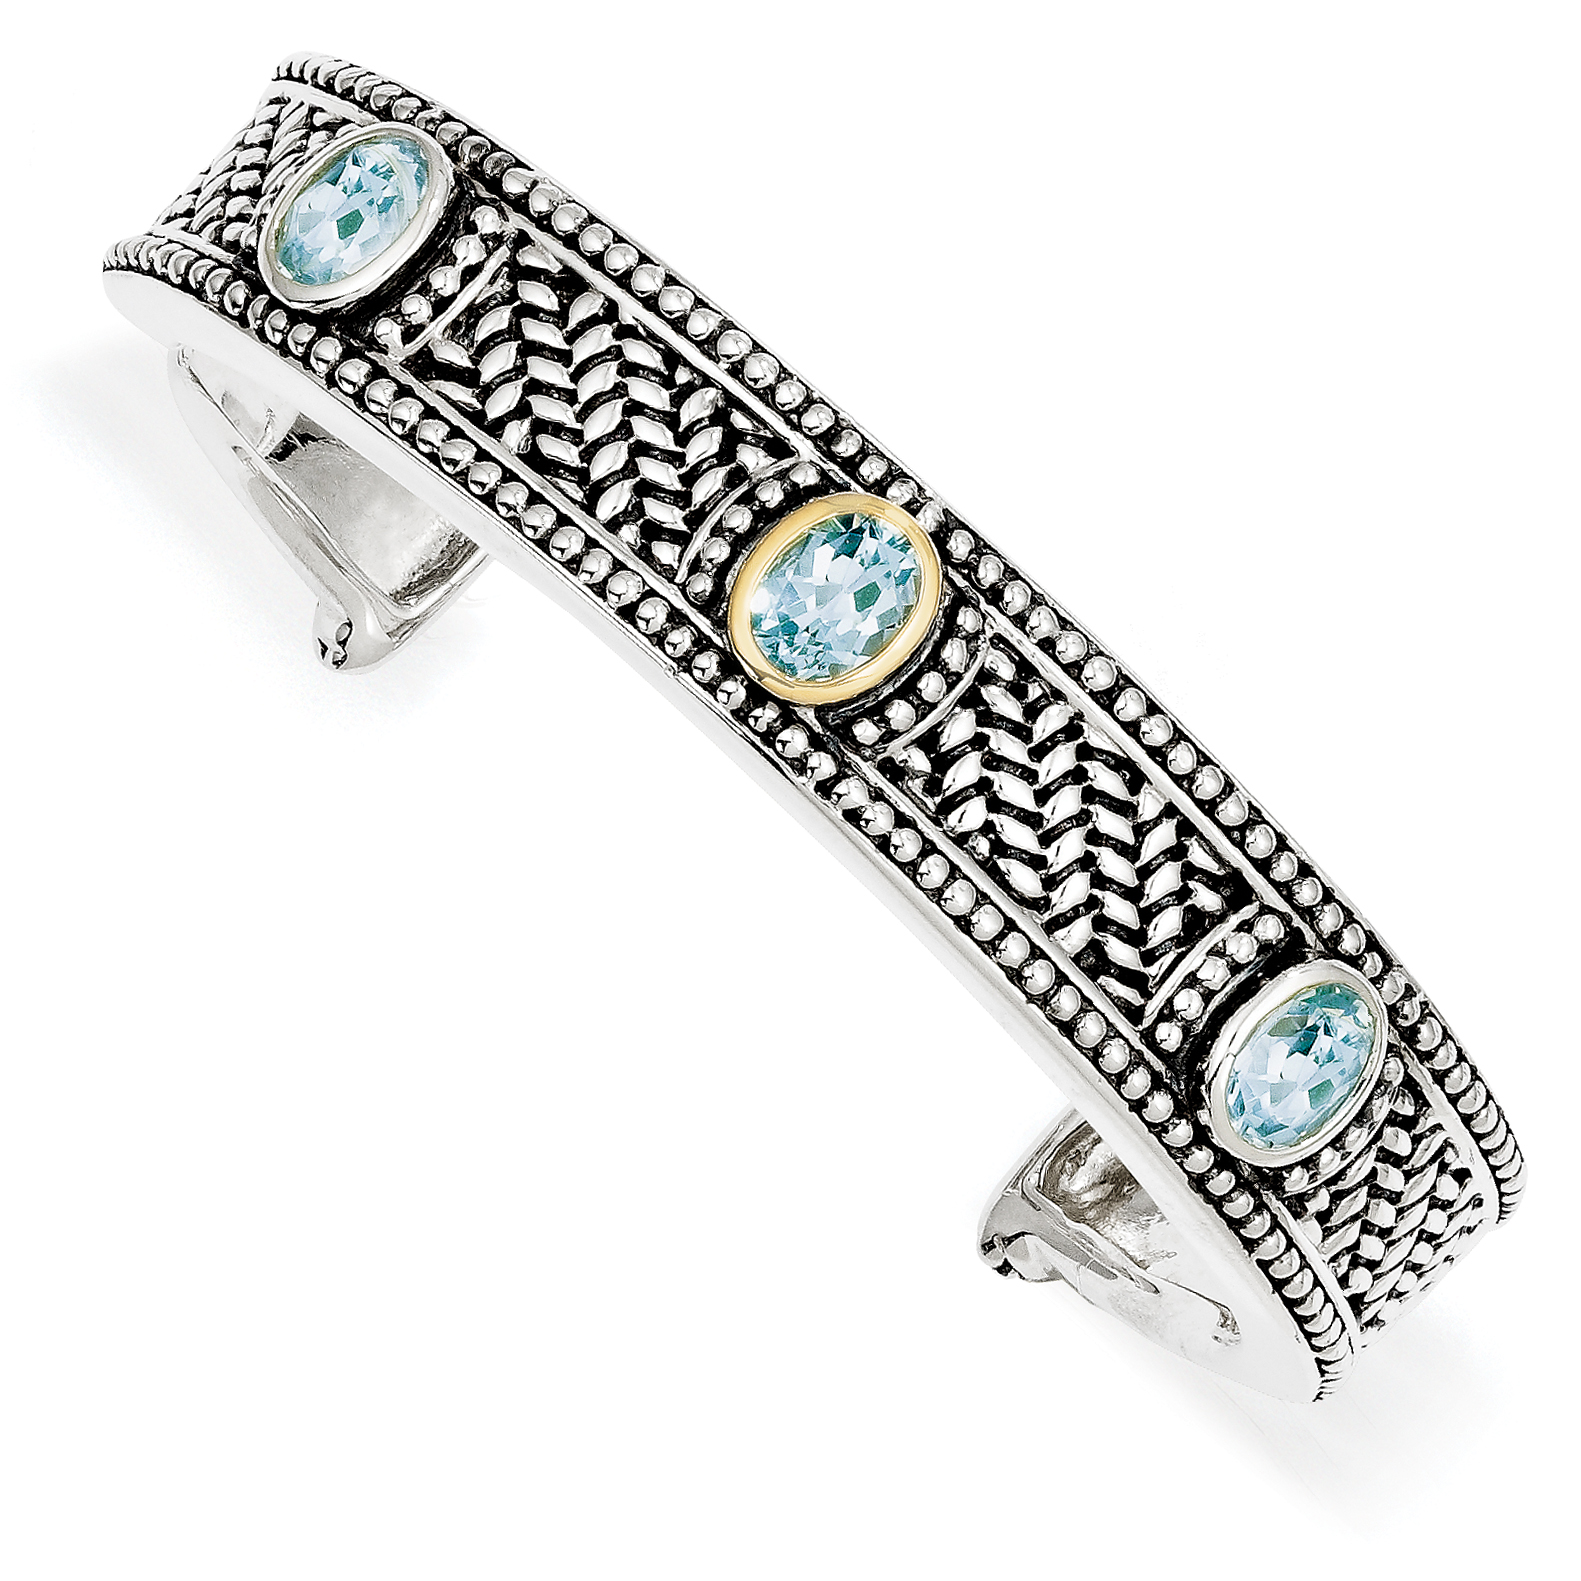 Roy Rose Jewelry Sterling Silver and 14K Gold 4.8-Carart Sky Blue Topaz Cuff Bracelet ~ Length 7'' inches by